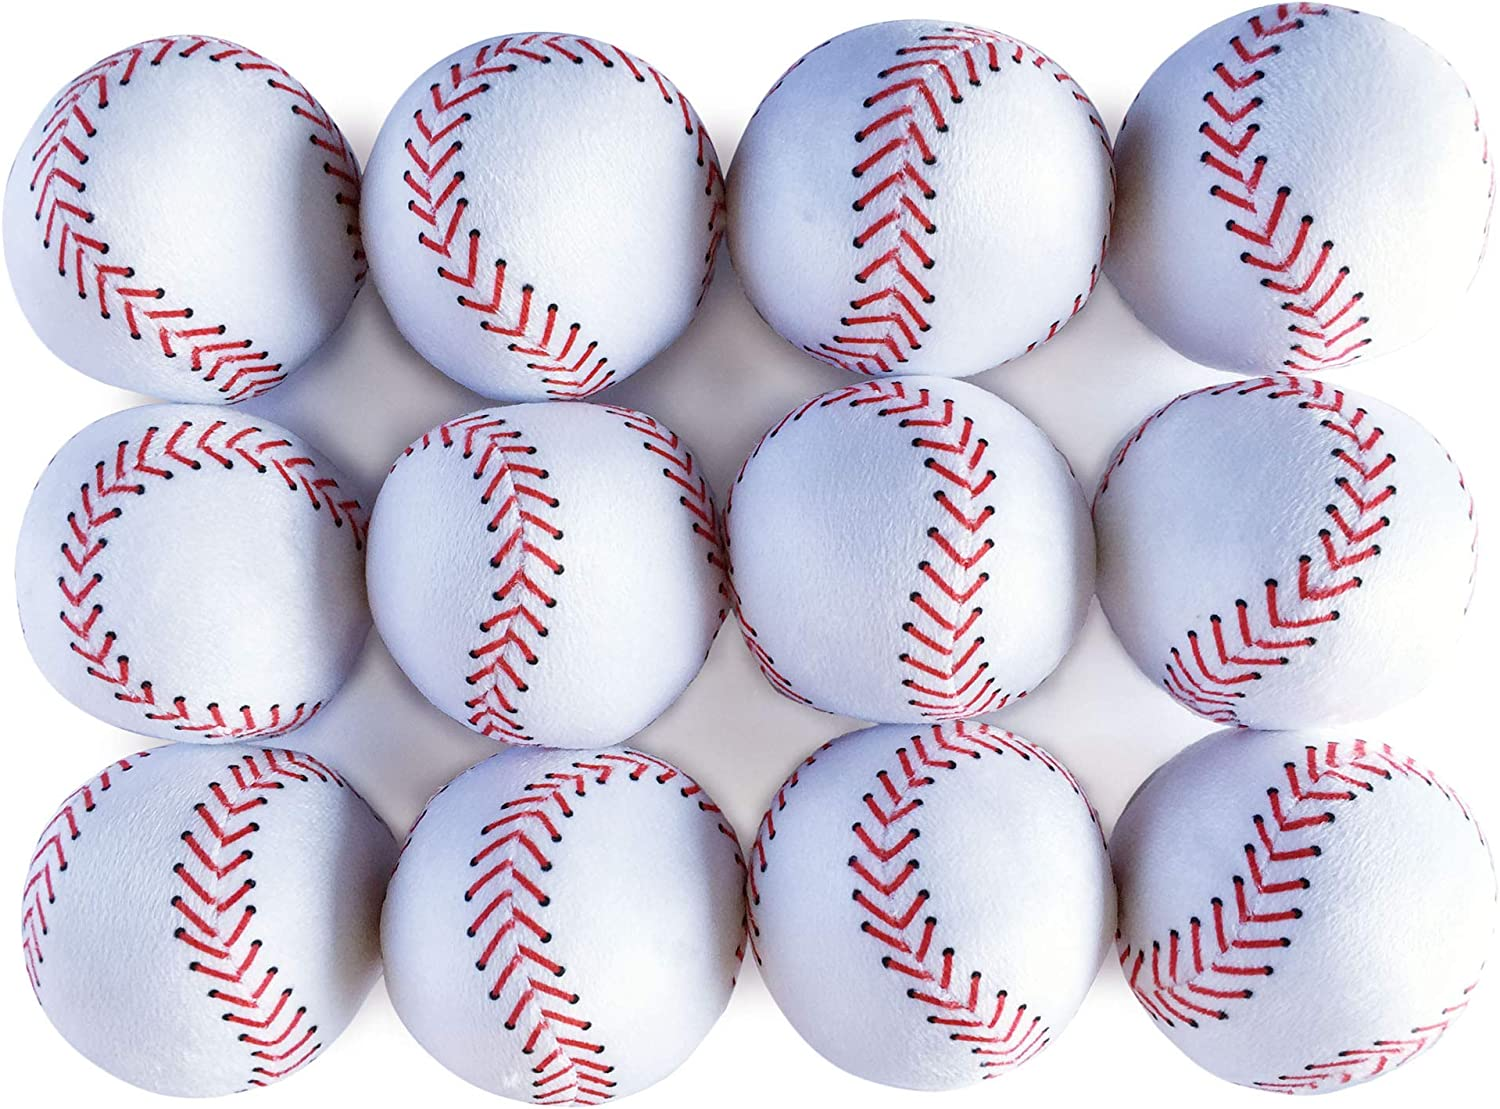 WOWMAX Toy Baseball Plush Fluffy Stuffed Sports Ball Soft Durable Sports Toy Gift for Kids 3 Inches Green and White Set of 10